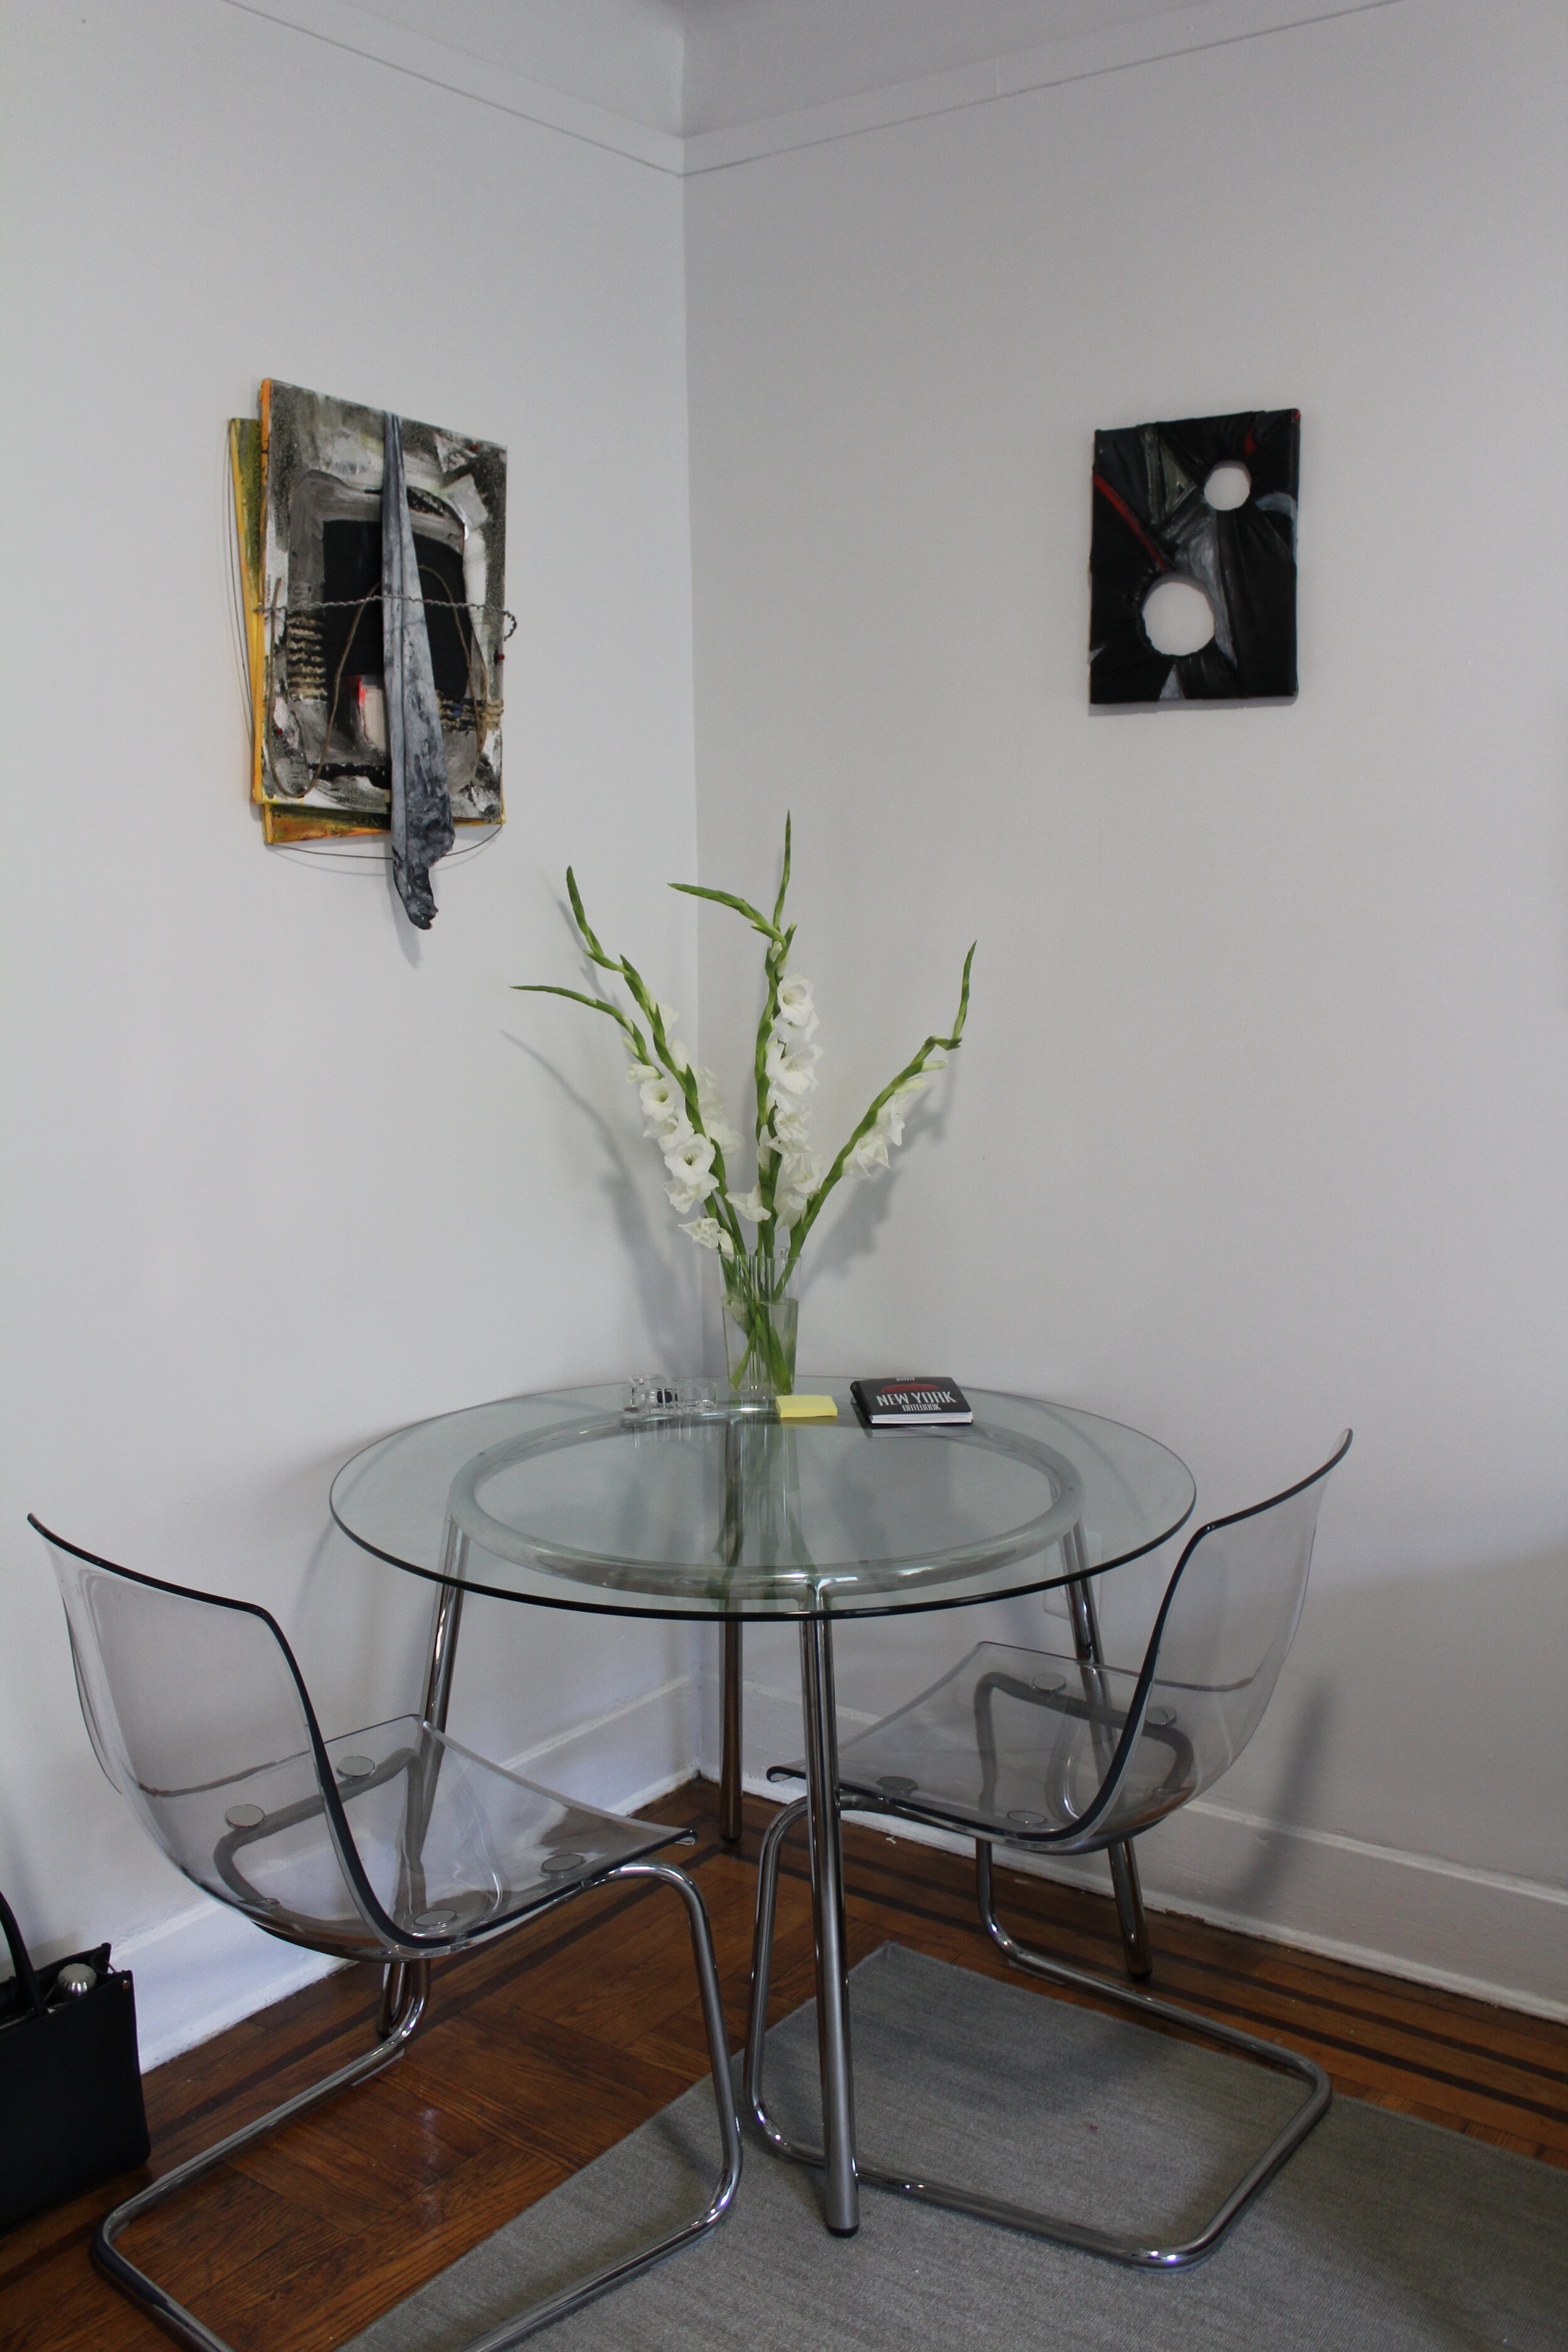 Alex-Markwith-apartment-installation-two-works